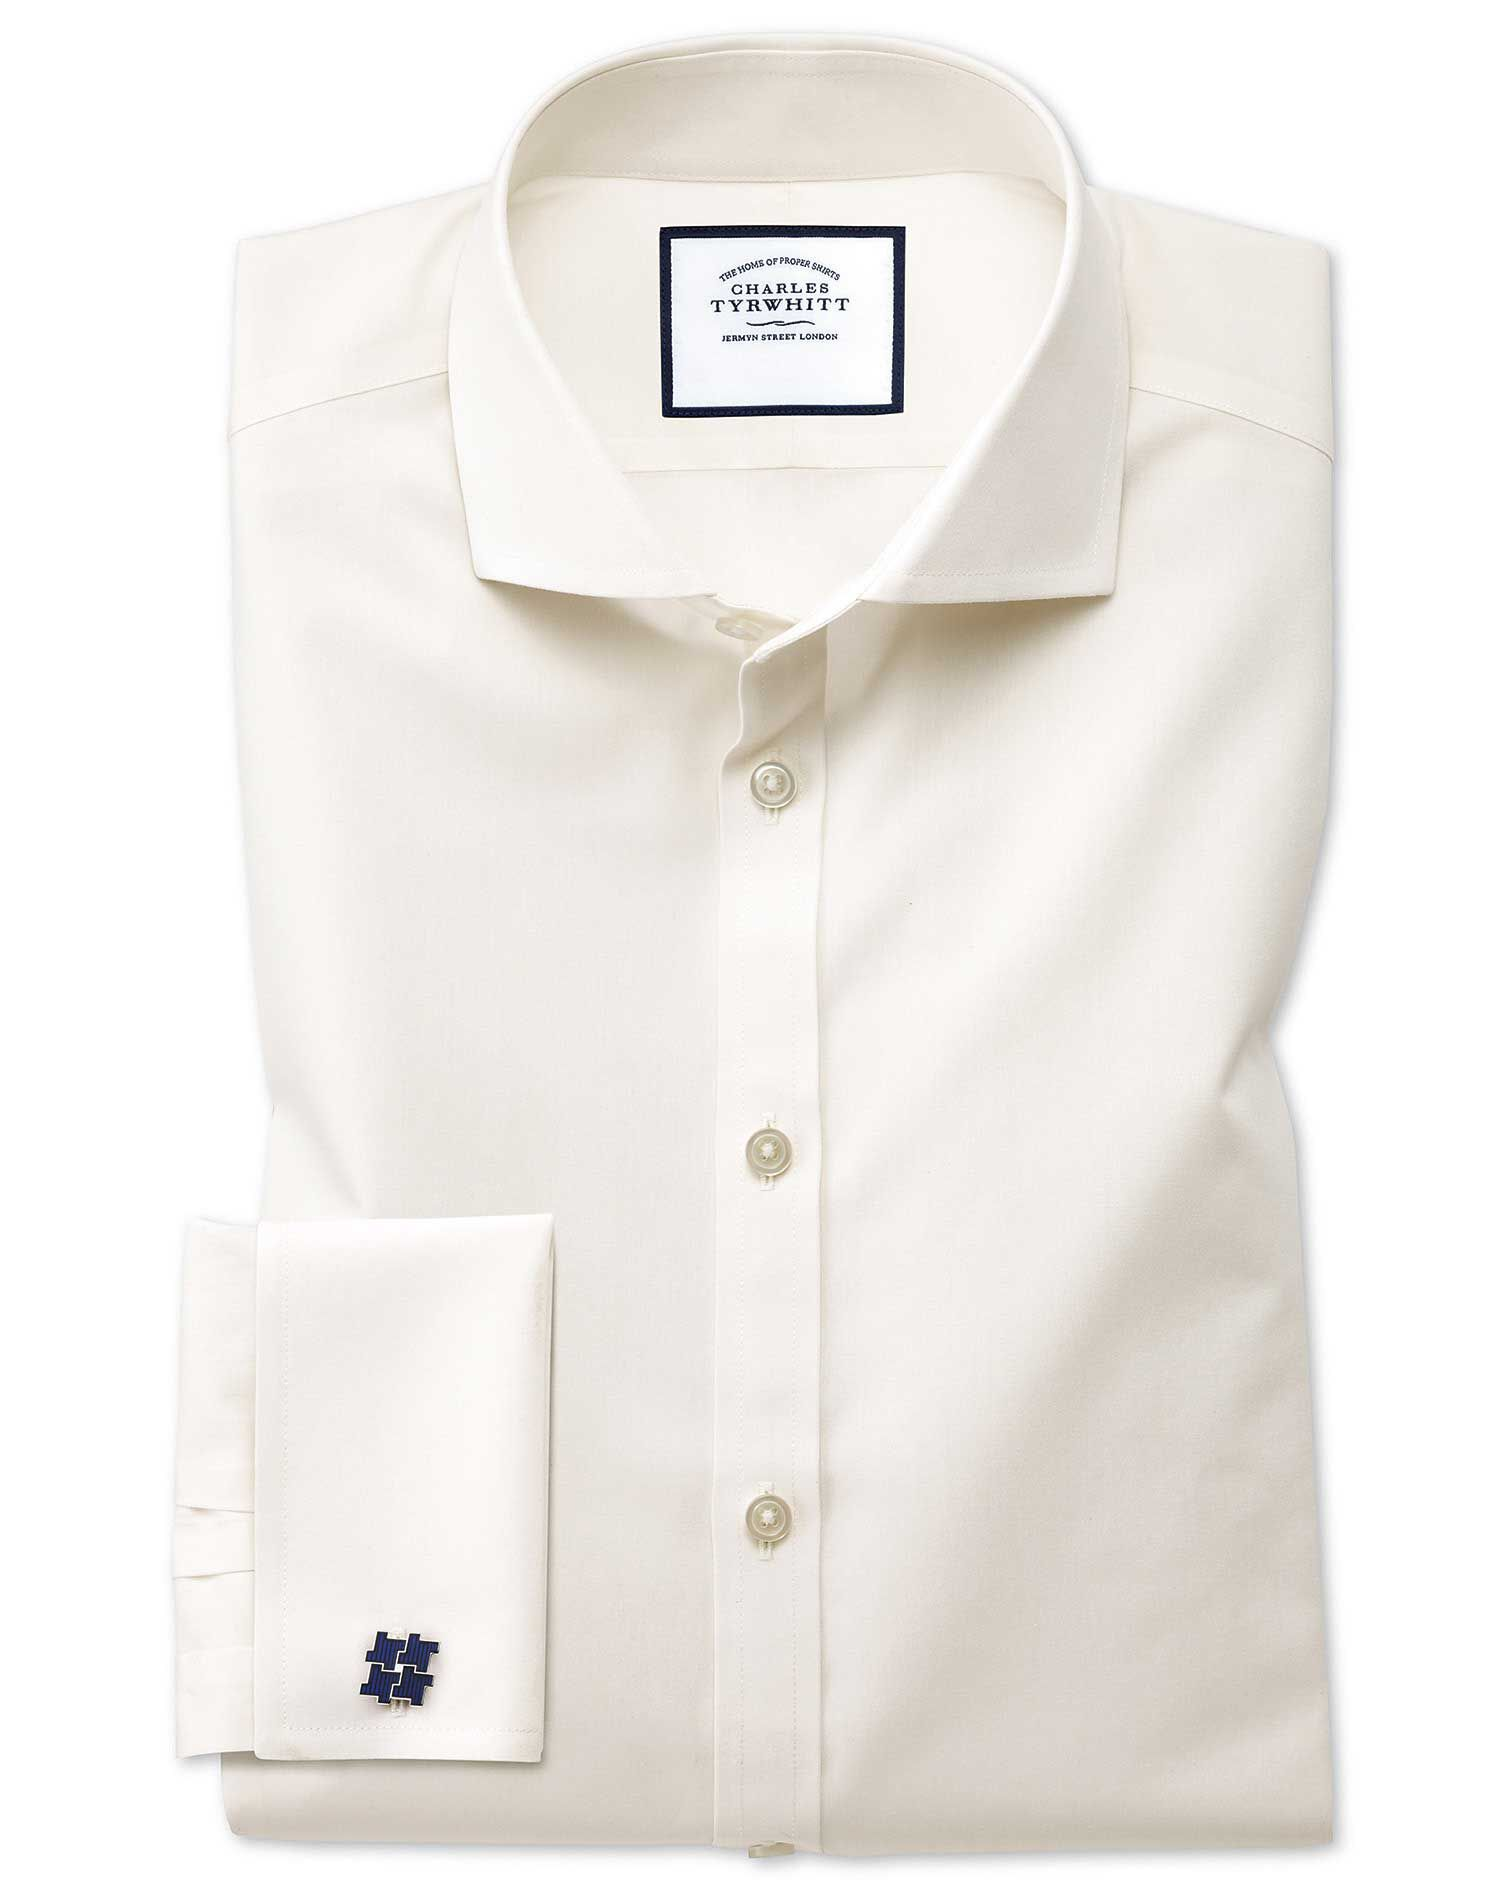 Extra Slim Fit Cutaway Non-Iron Poplin Cream Cotton Formal Shirt Double Cuff Size 15.5/34 by Charles